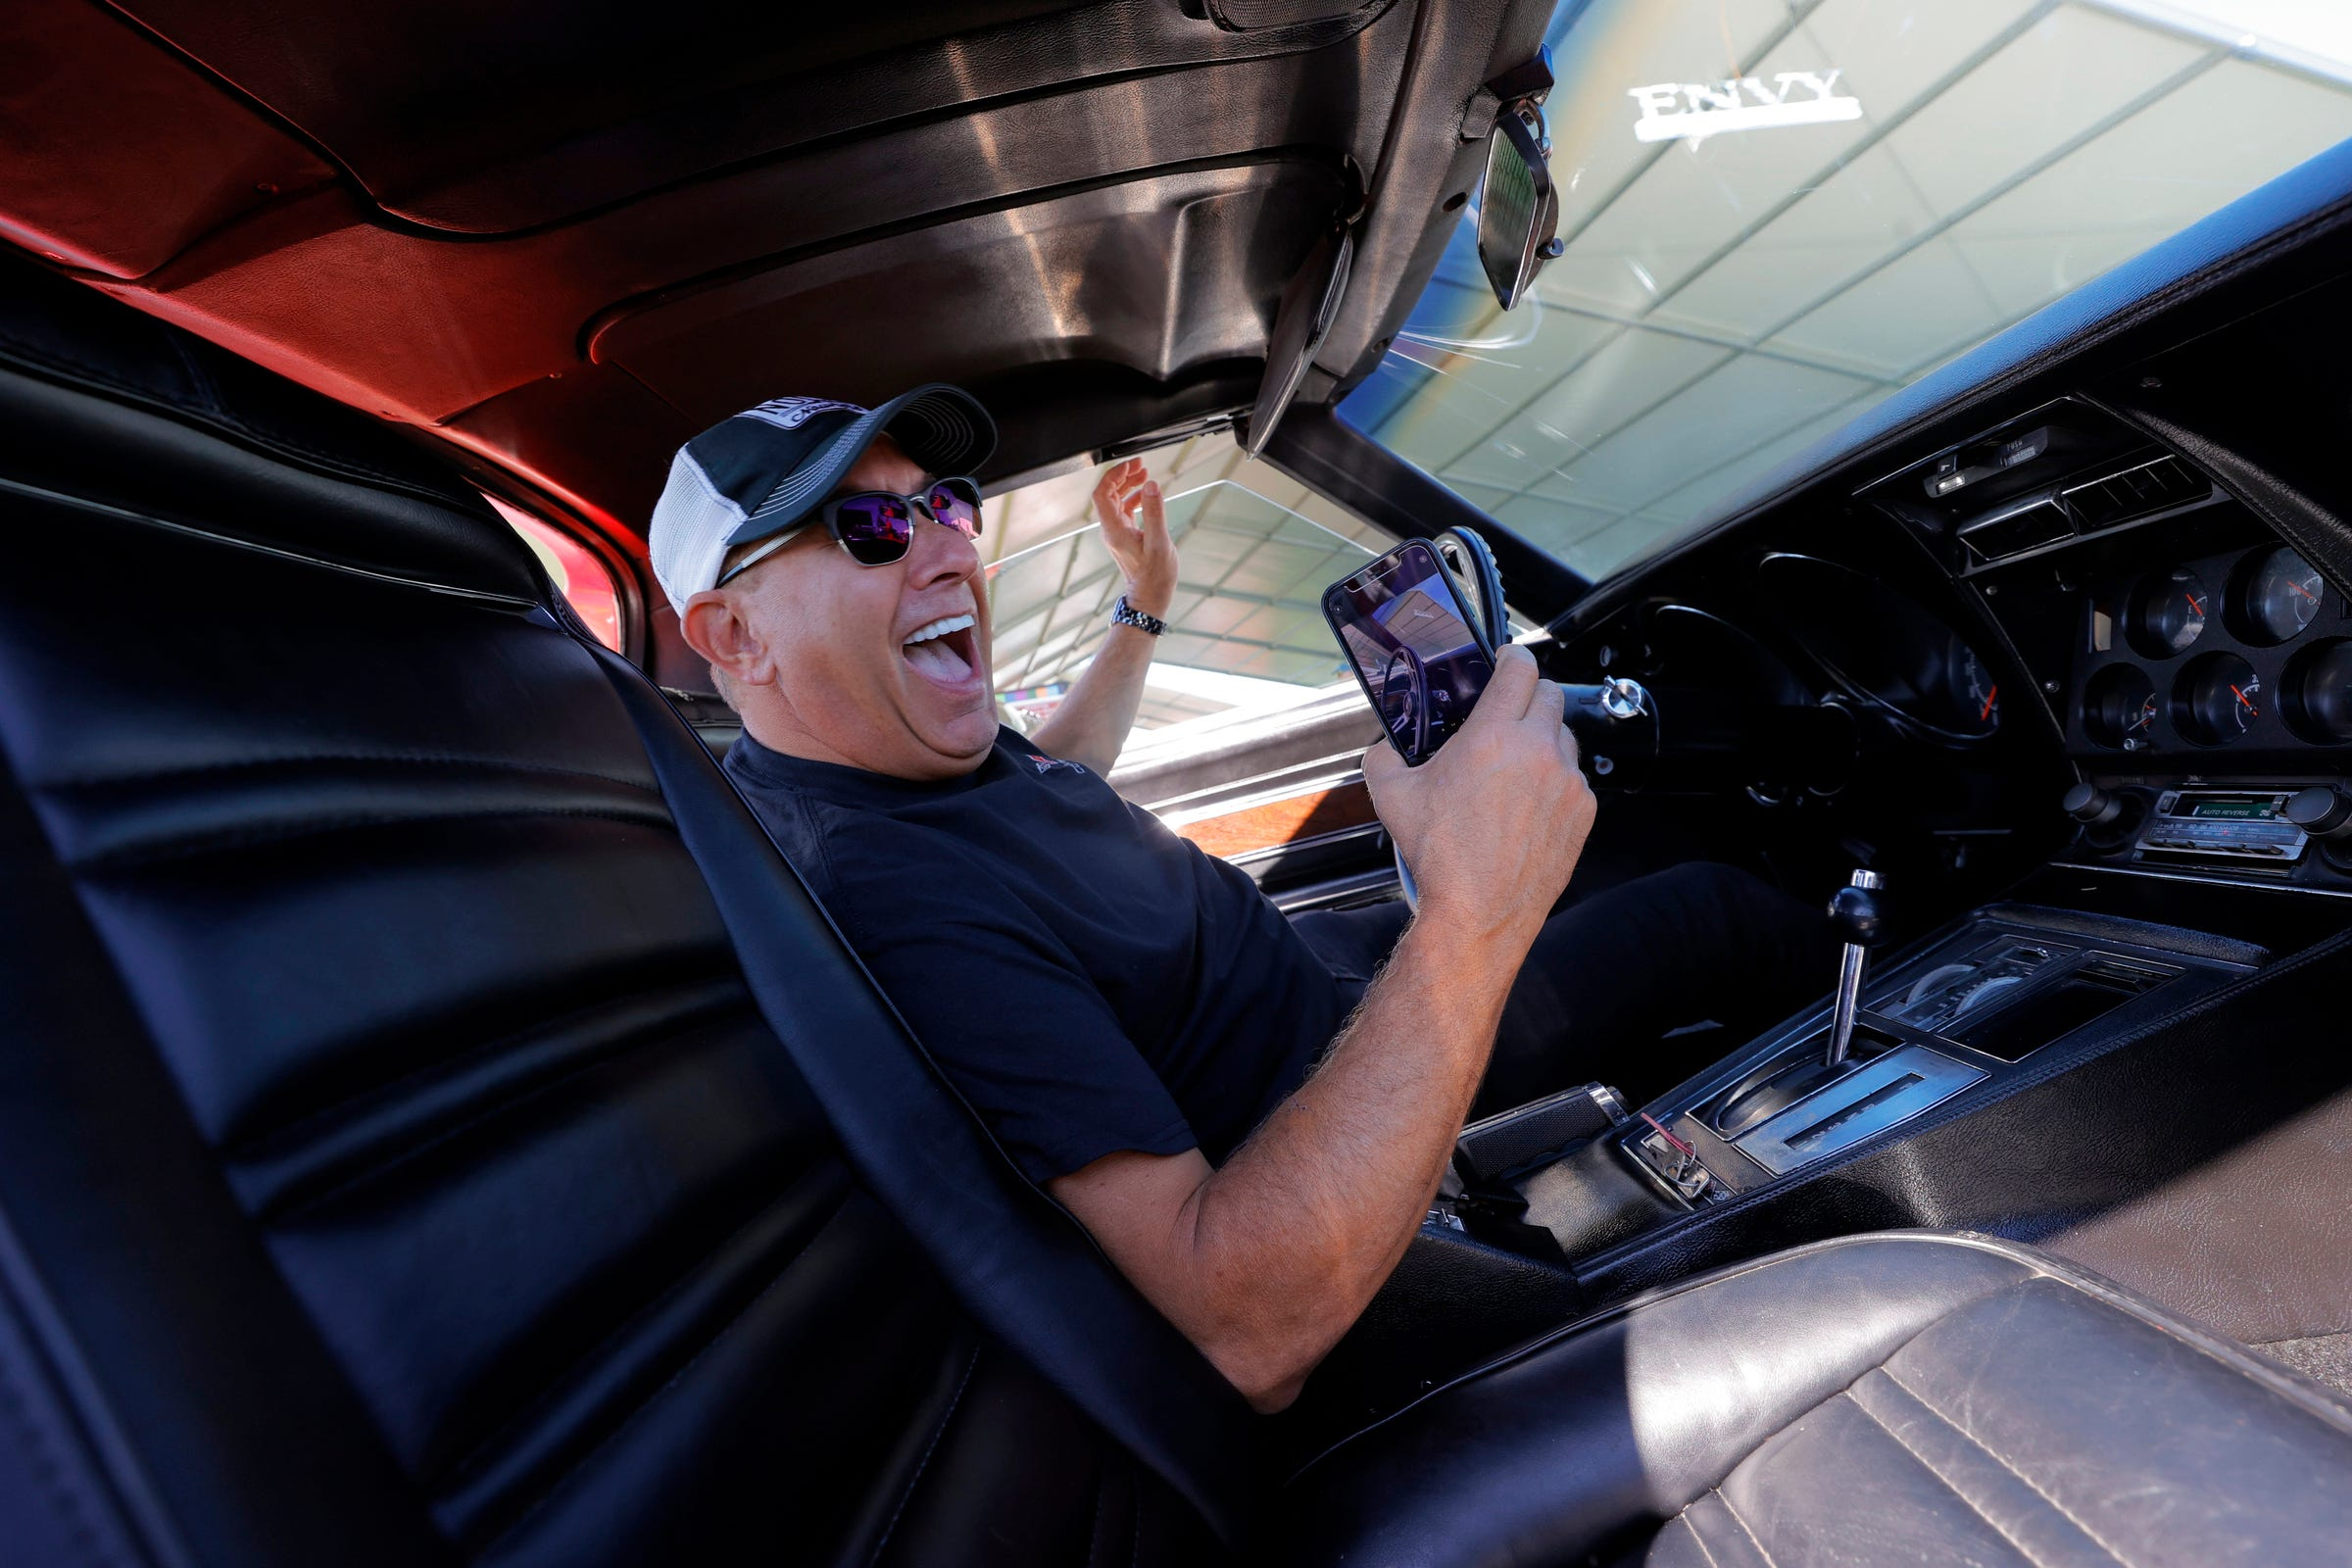 6 raffle winners leave Motor Bella with classic Corvettes, all for helping heroes